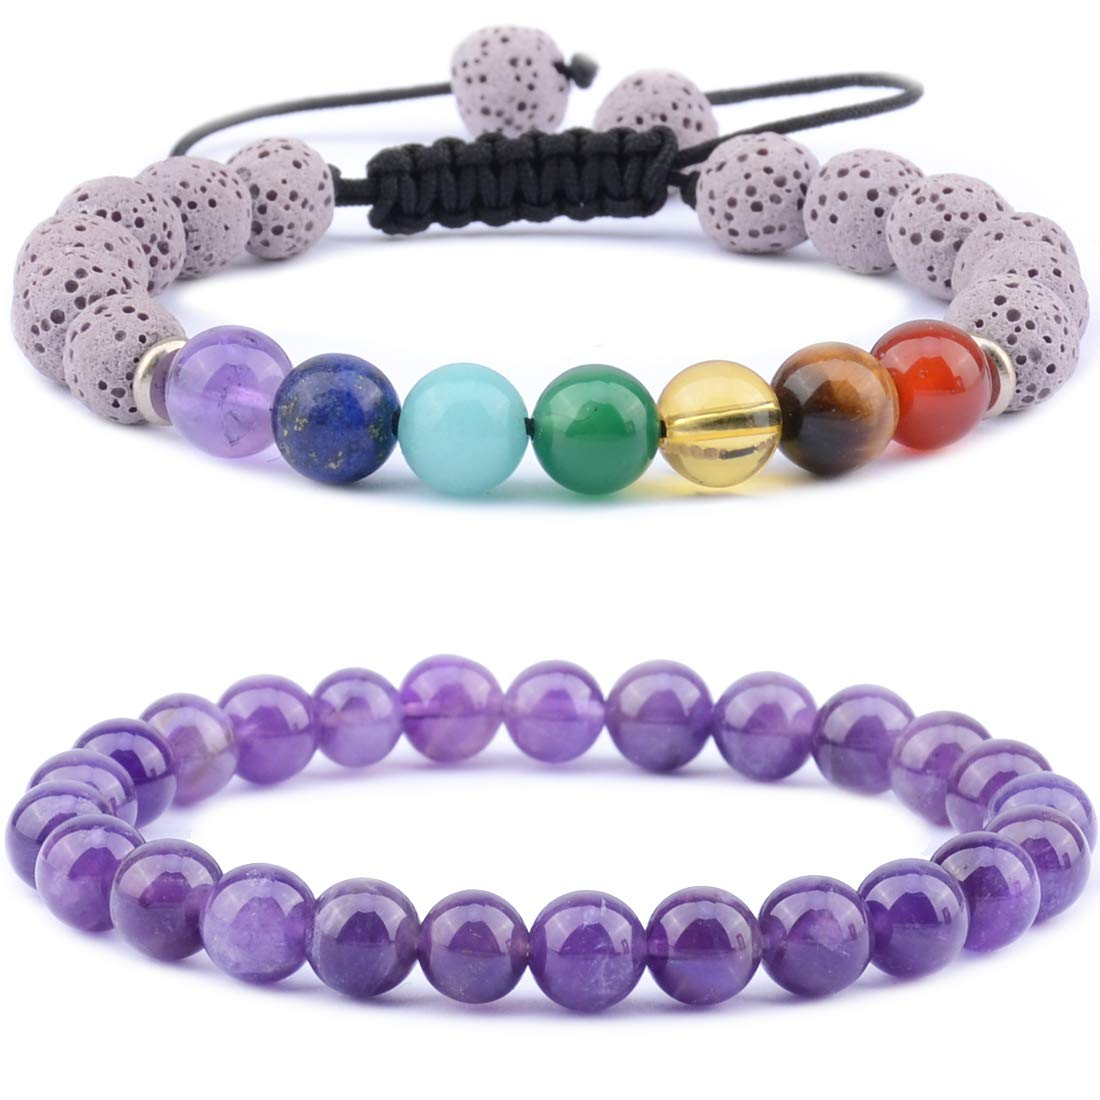 Men Women 8mm Lava Rock & 7 Chakras Essential Oil Diffuser Bracelet - Aromatherapy Anxiety Self Confidence Meditation Relax Healing Grounding Reiki Genuine - Suitable as Distance Bracelets for Couples